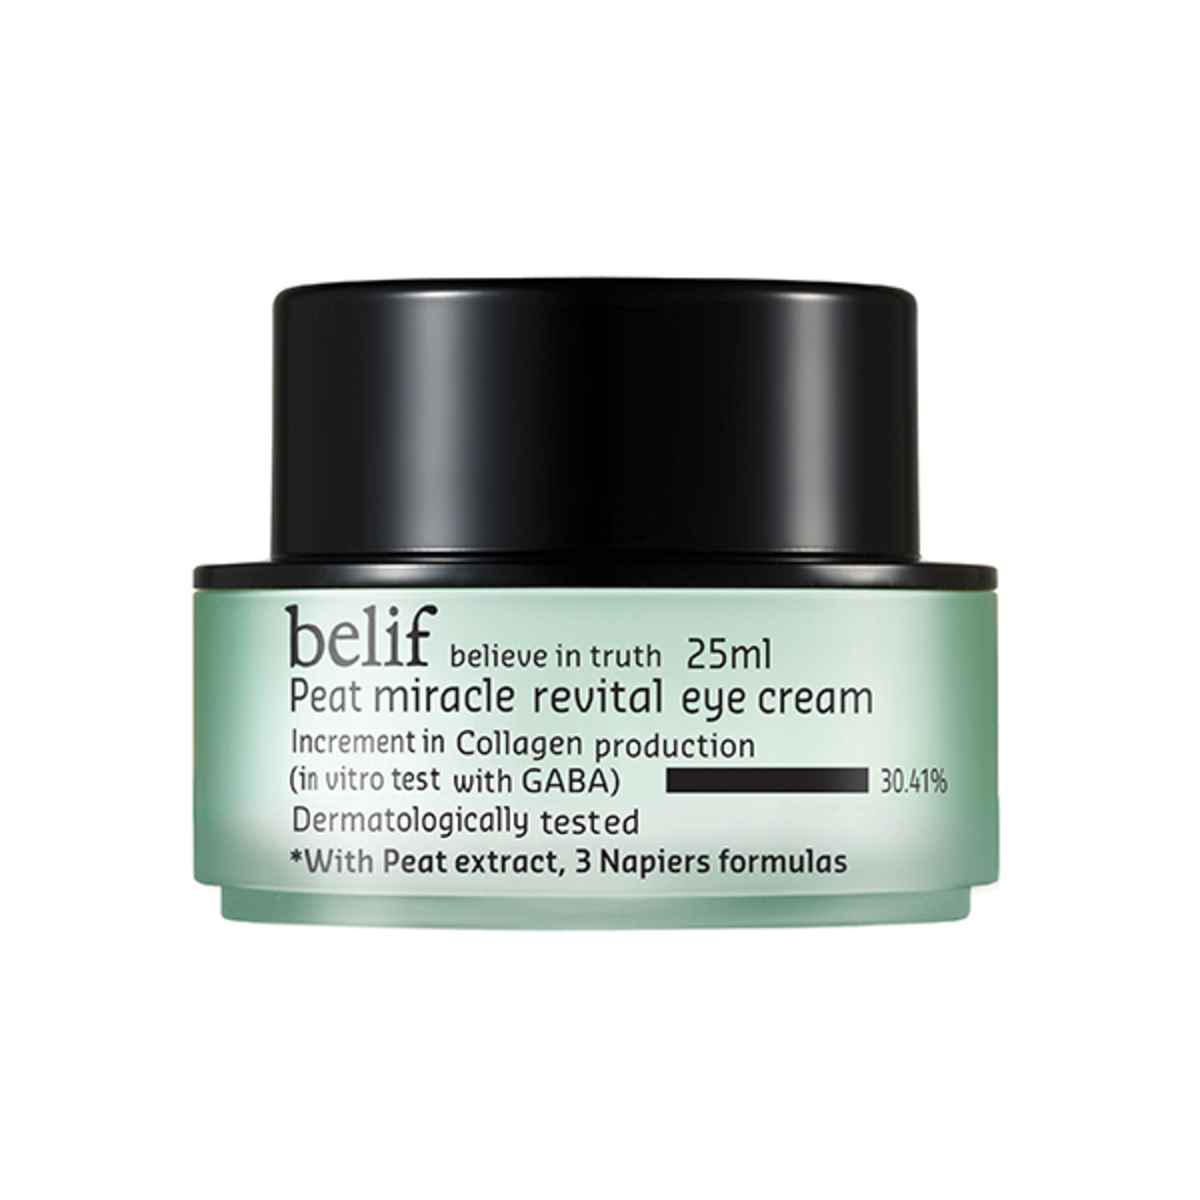 Belif Peat Miracle Eye Cream